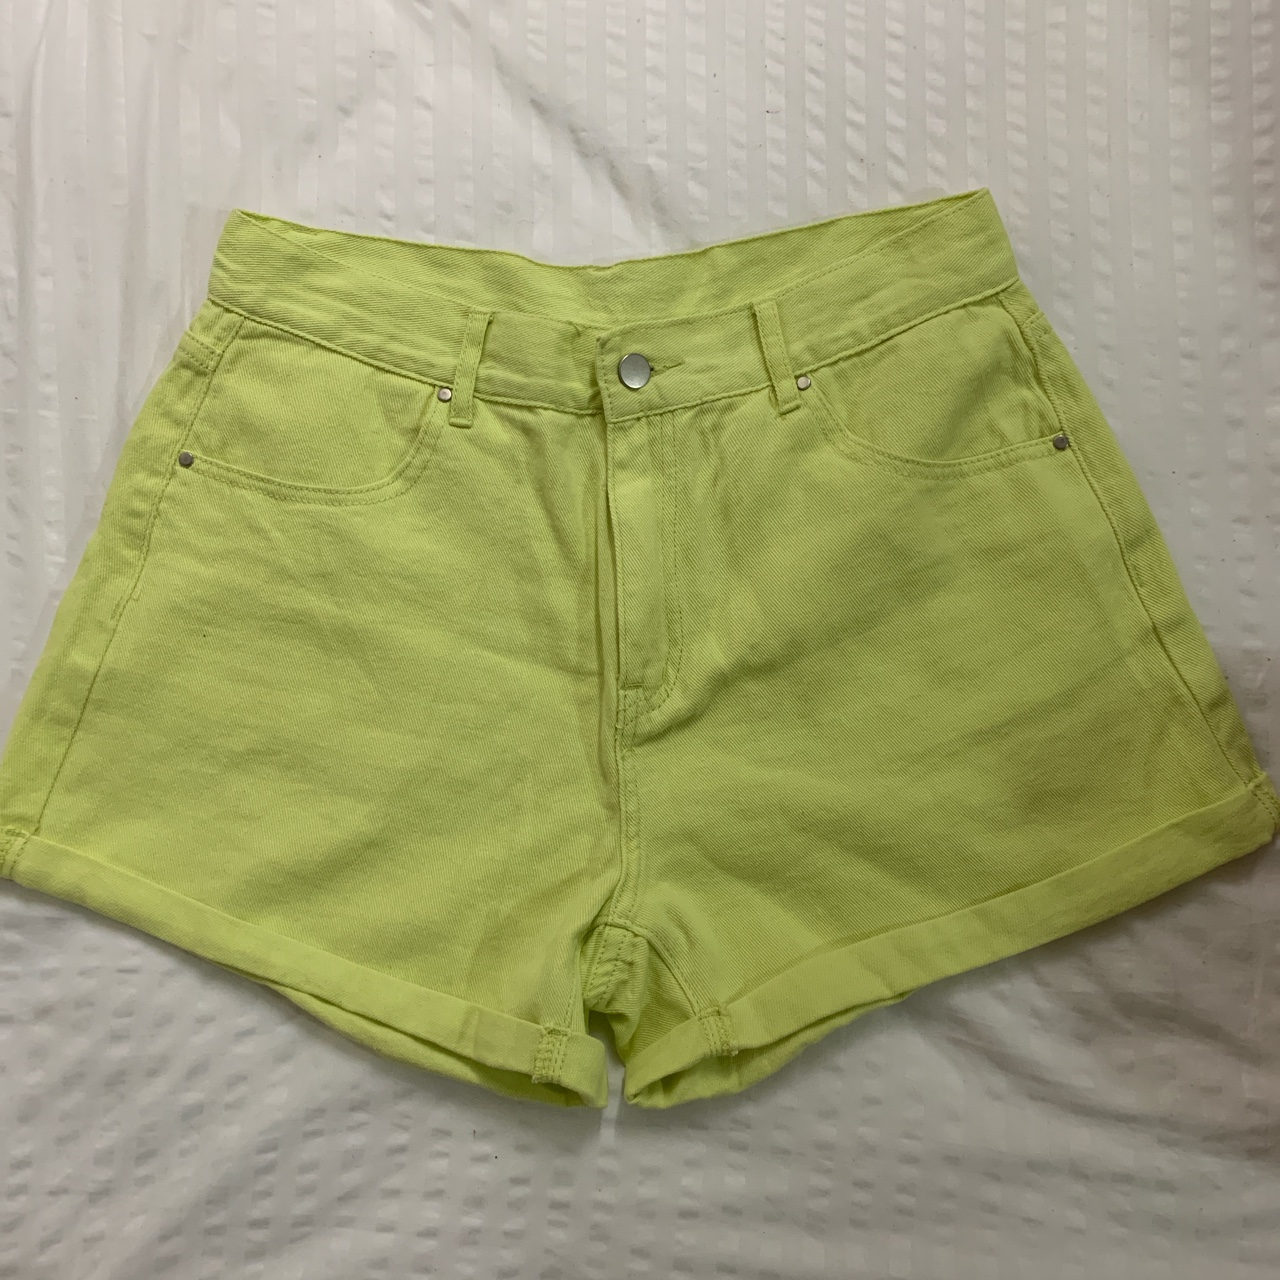 Product Image 1 - Vintage lime green high waisted